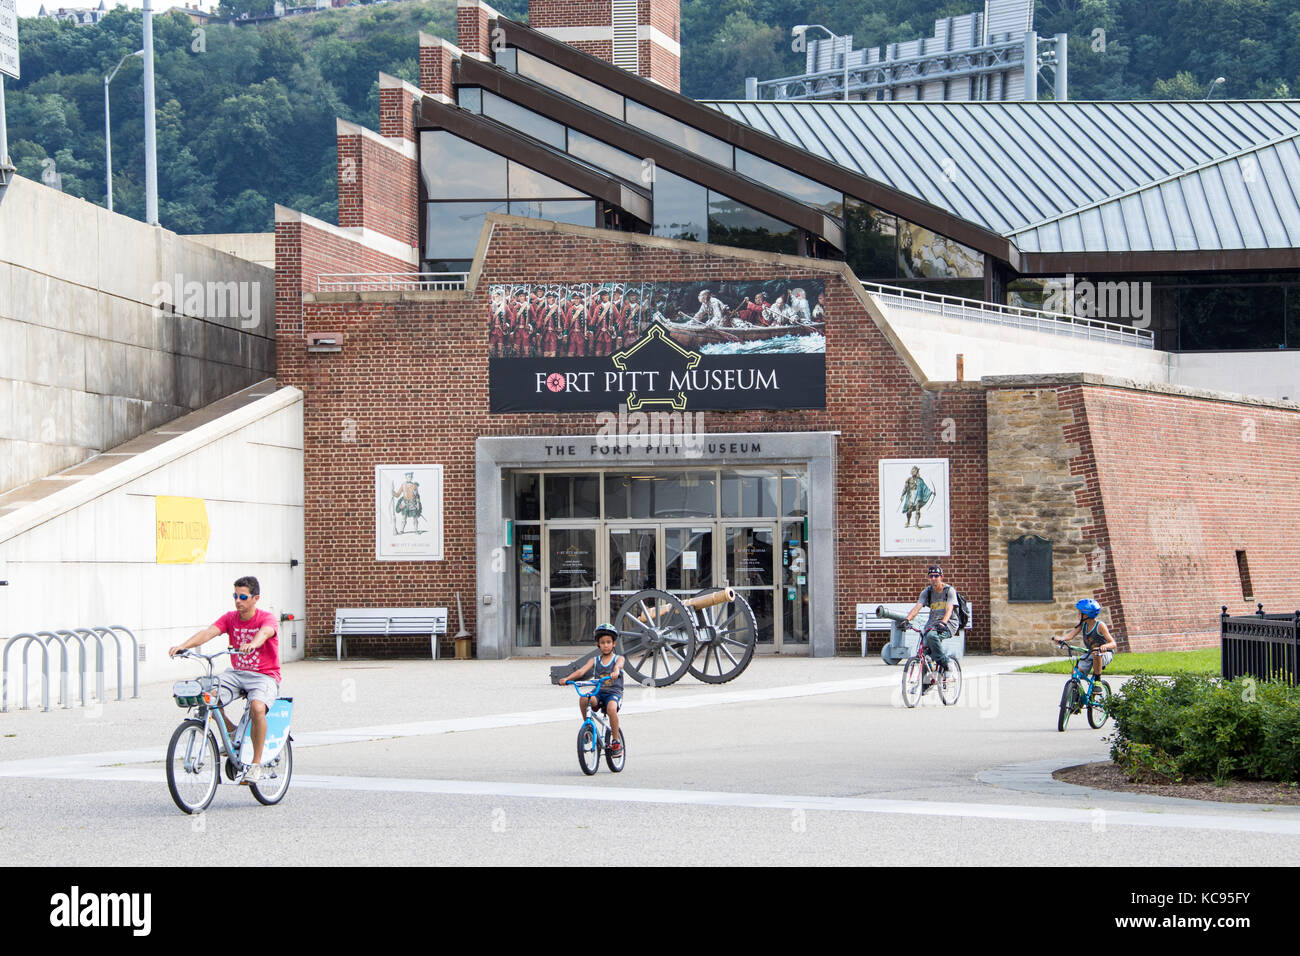 The Fort Pitt Museum, Pittsburgh, PA, USA Stock Photo